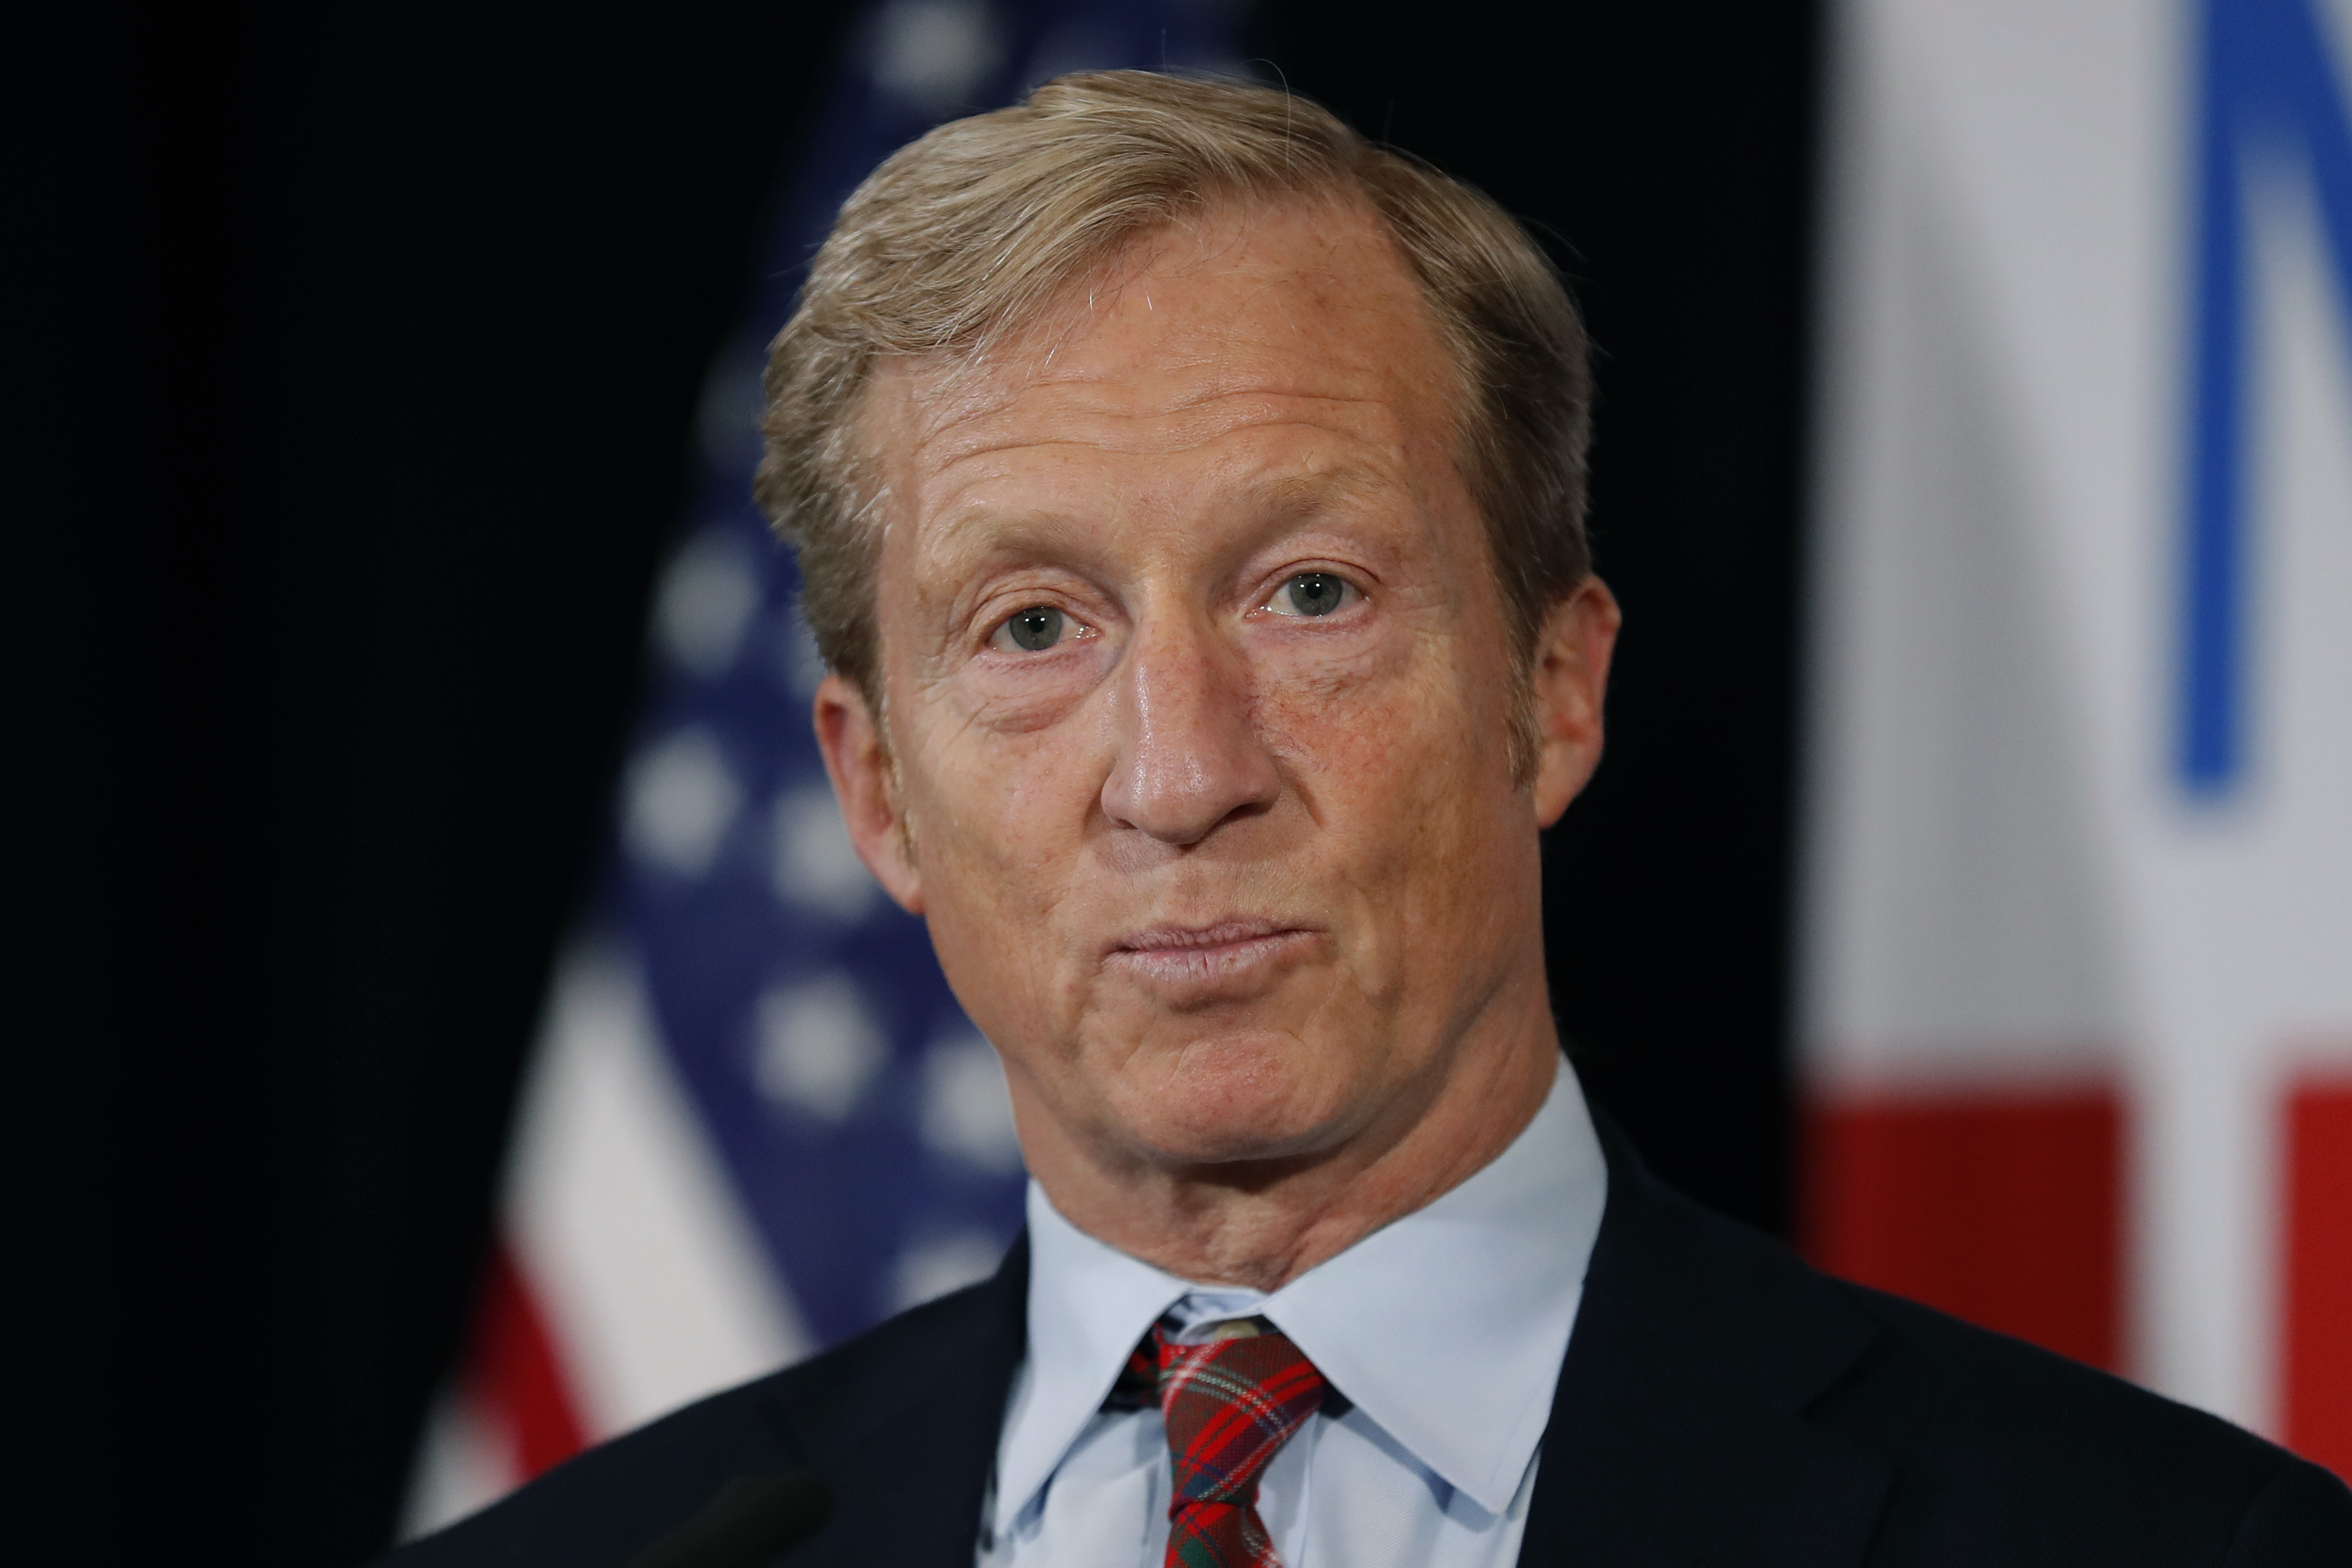 Tom Steyer launches 2020 campaign after saying he wouldnt